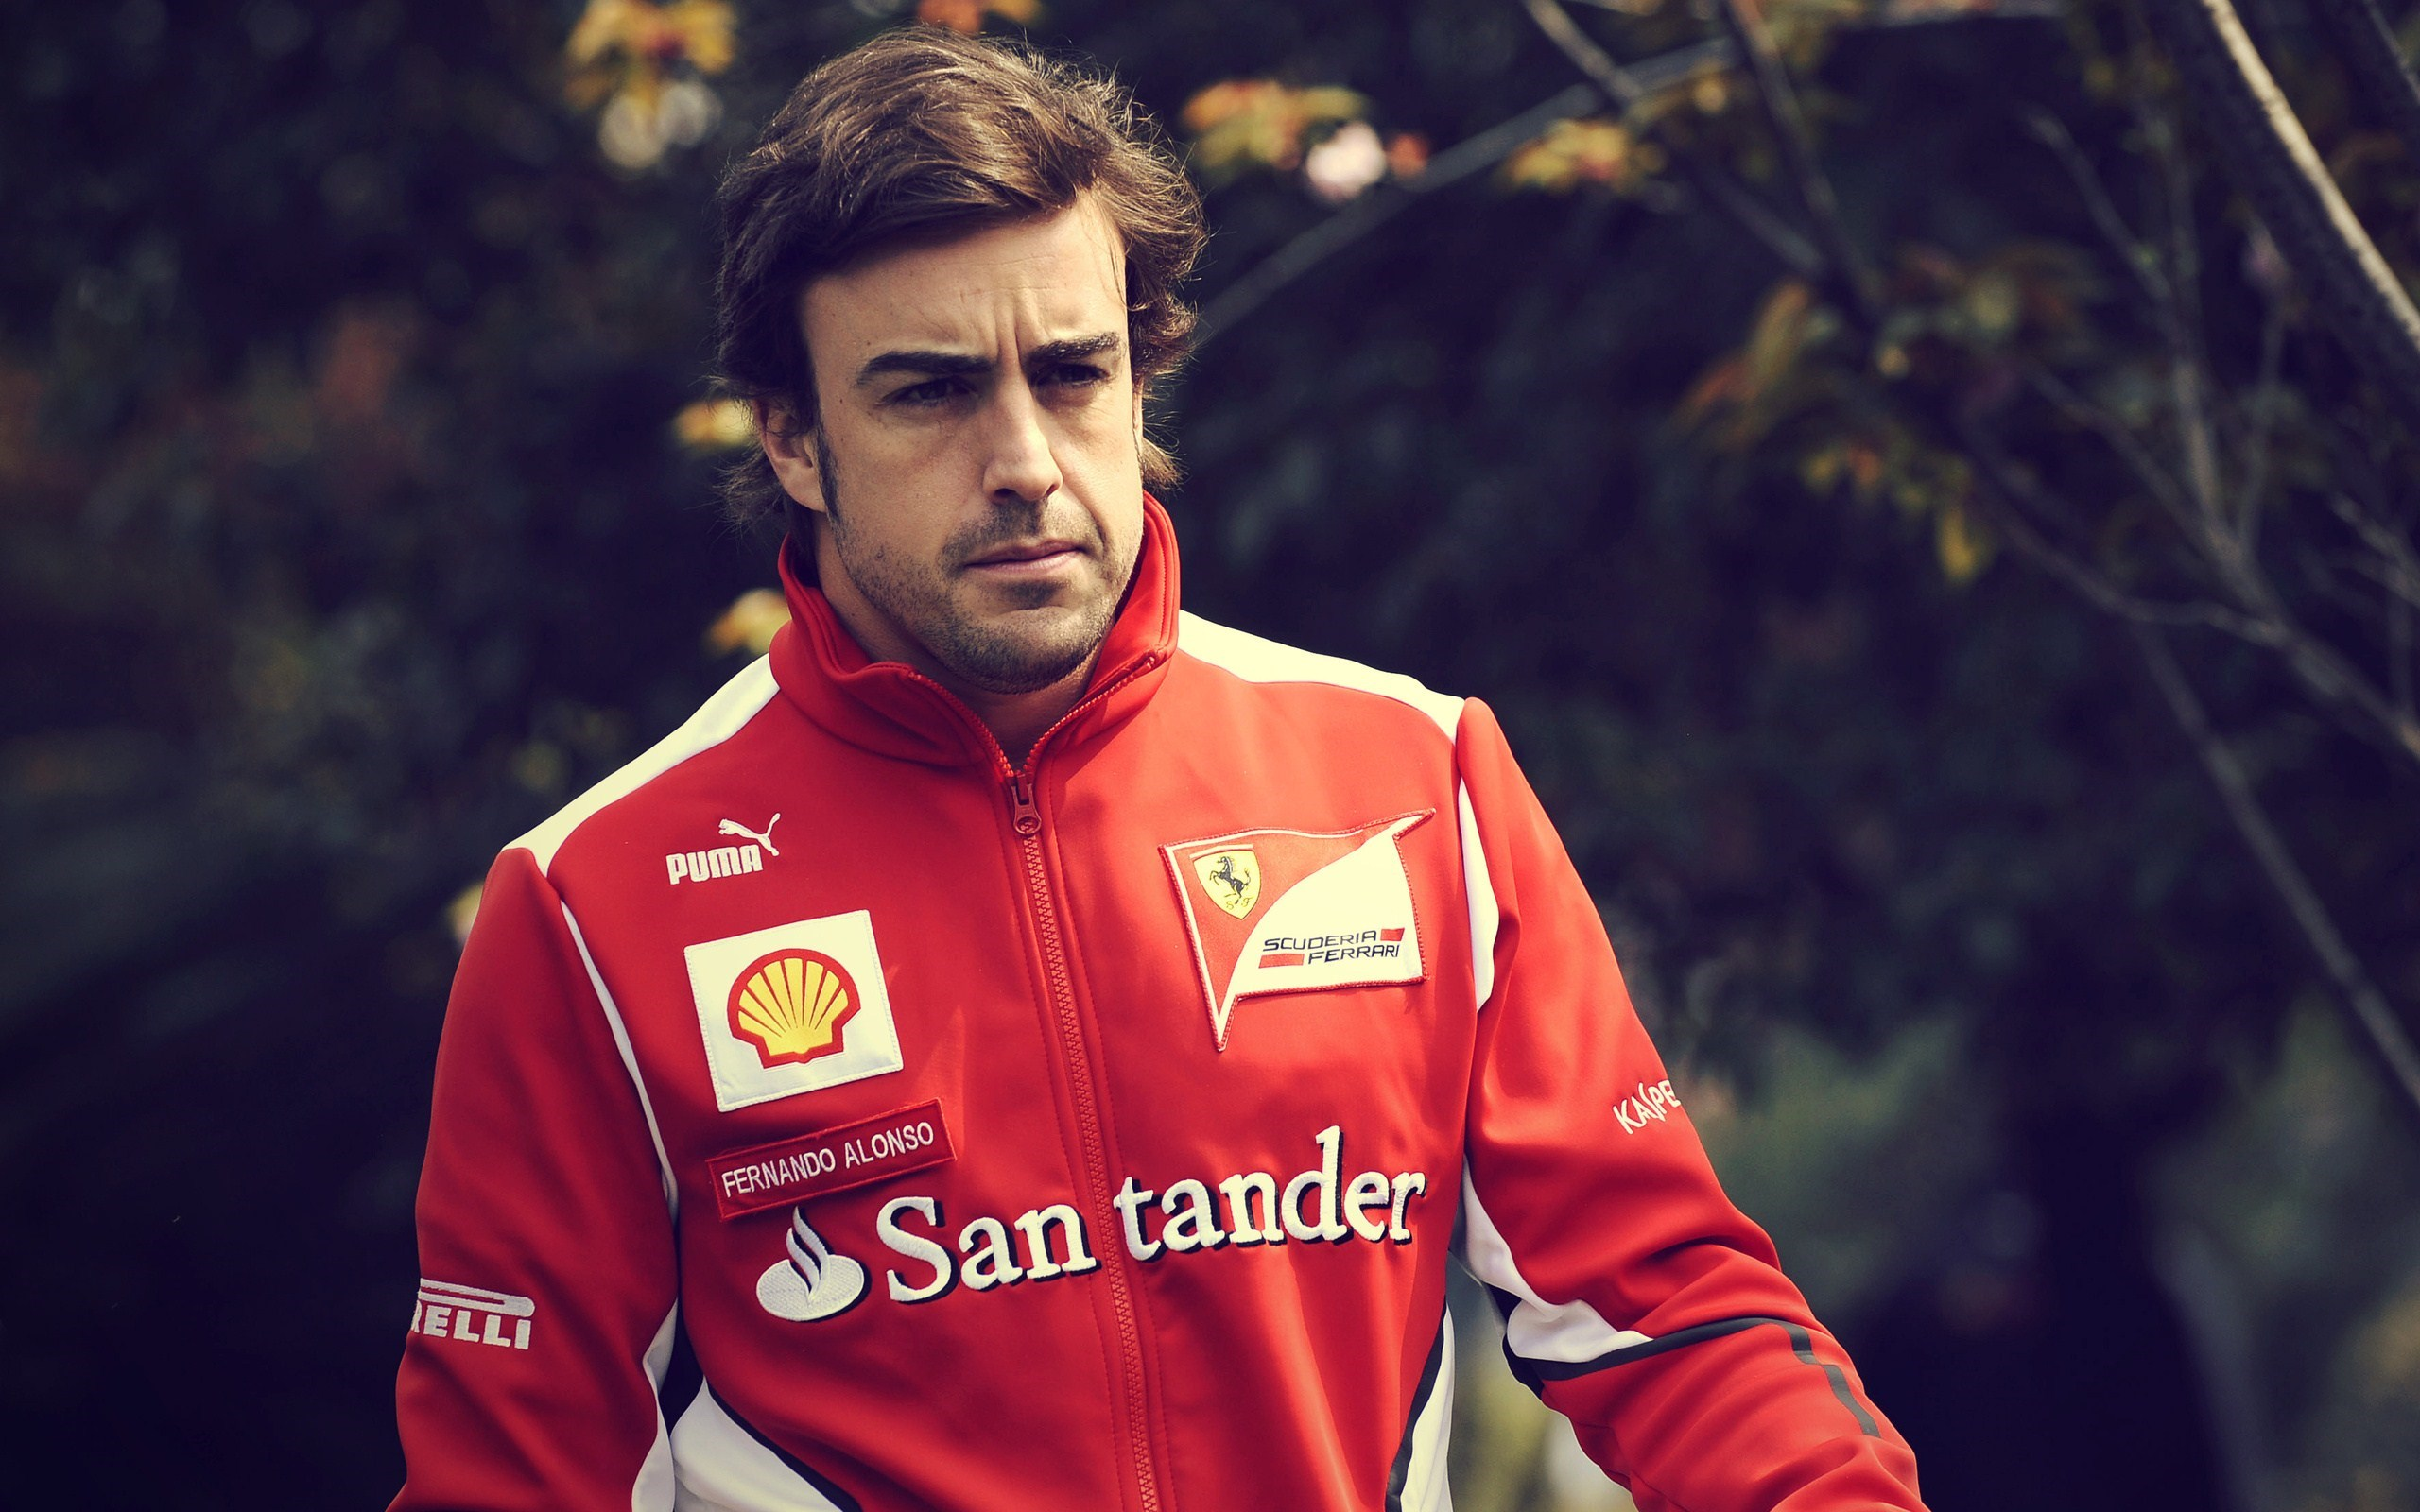 Fernando Alonso Driver Formula 1 Ferrari Photo